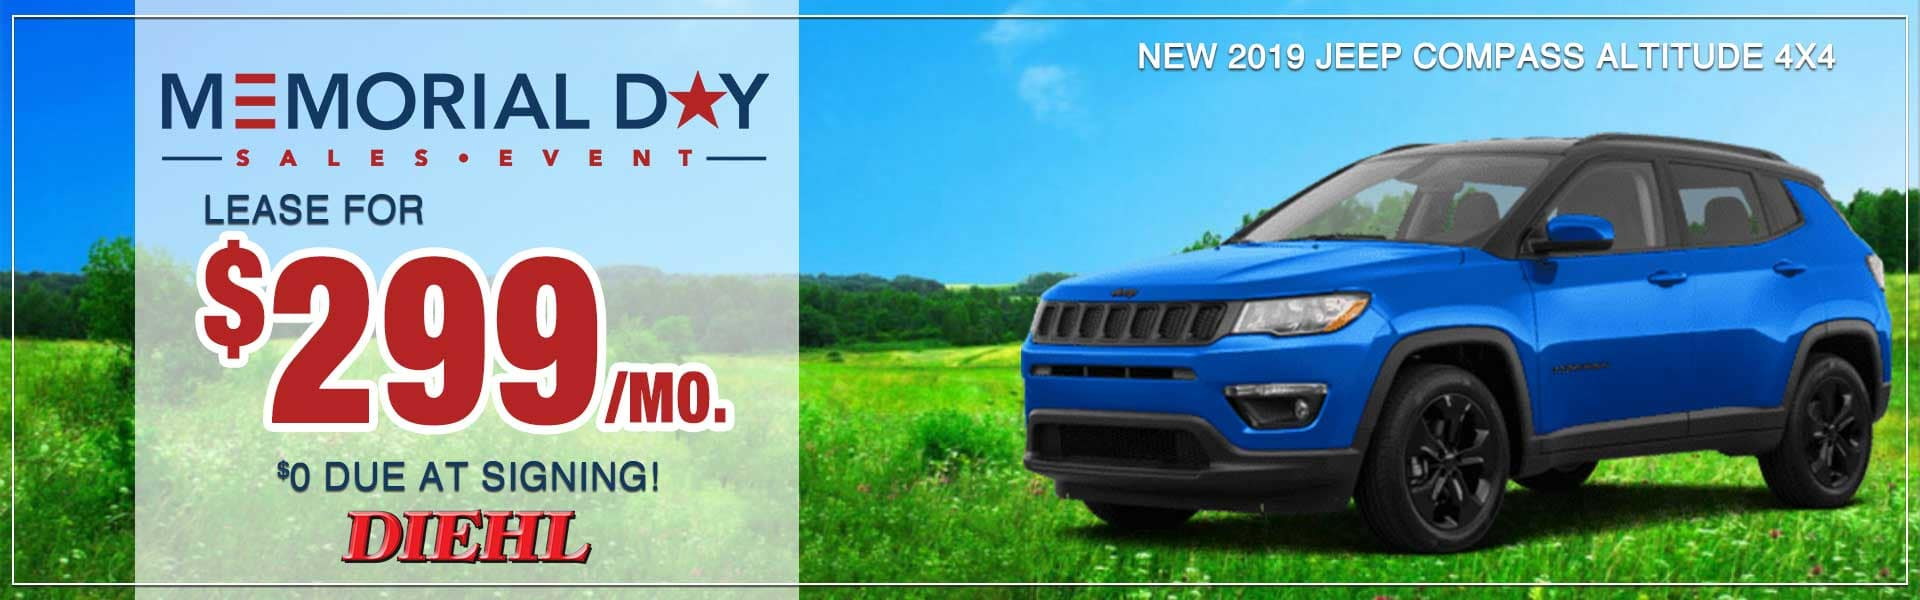 memorial day sales event diehl robinson 2019 jeep compass jeep lease special